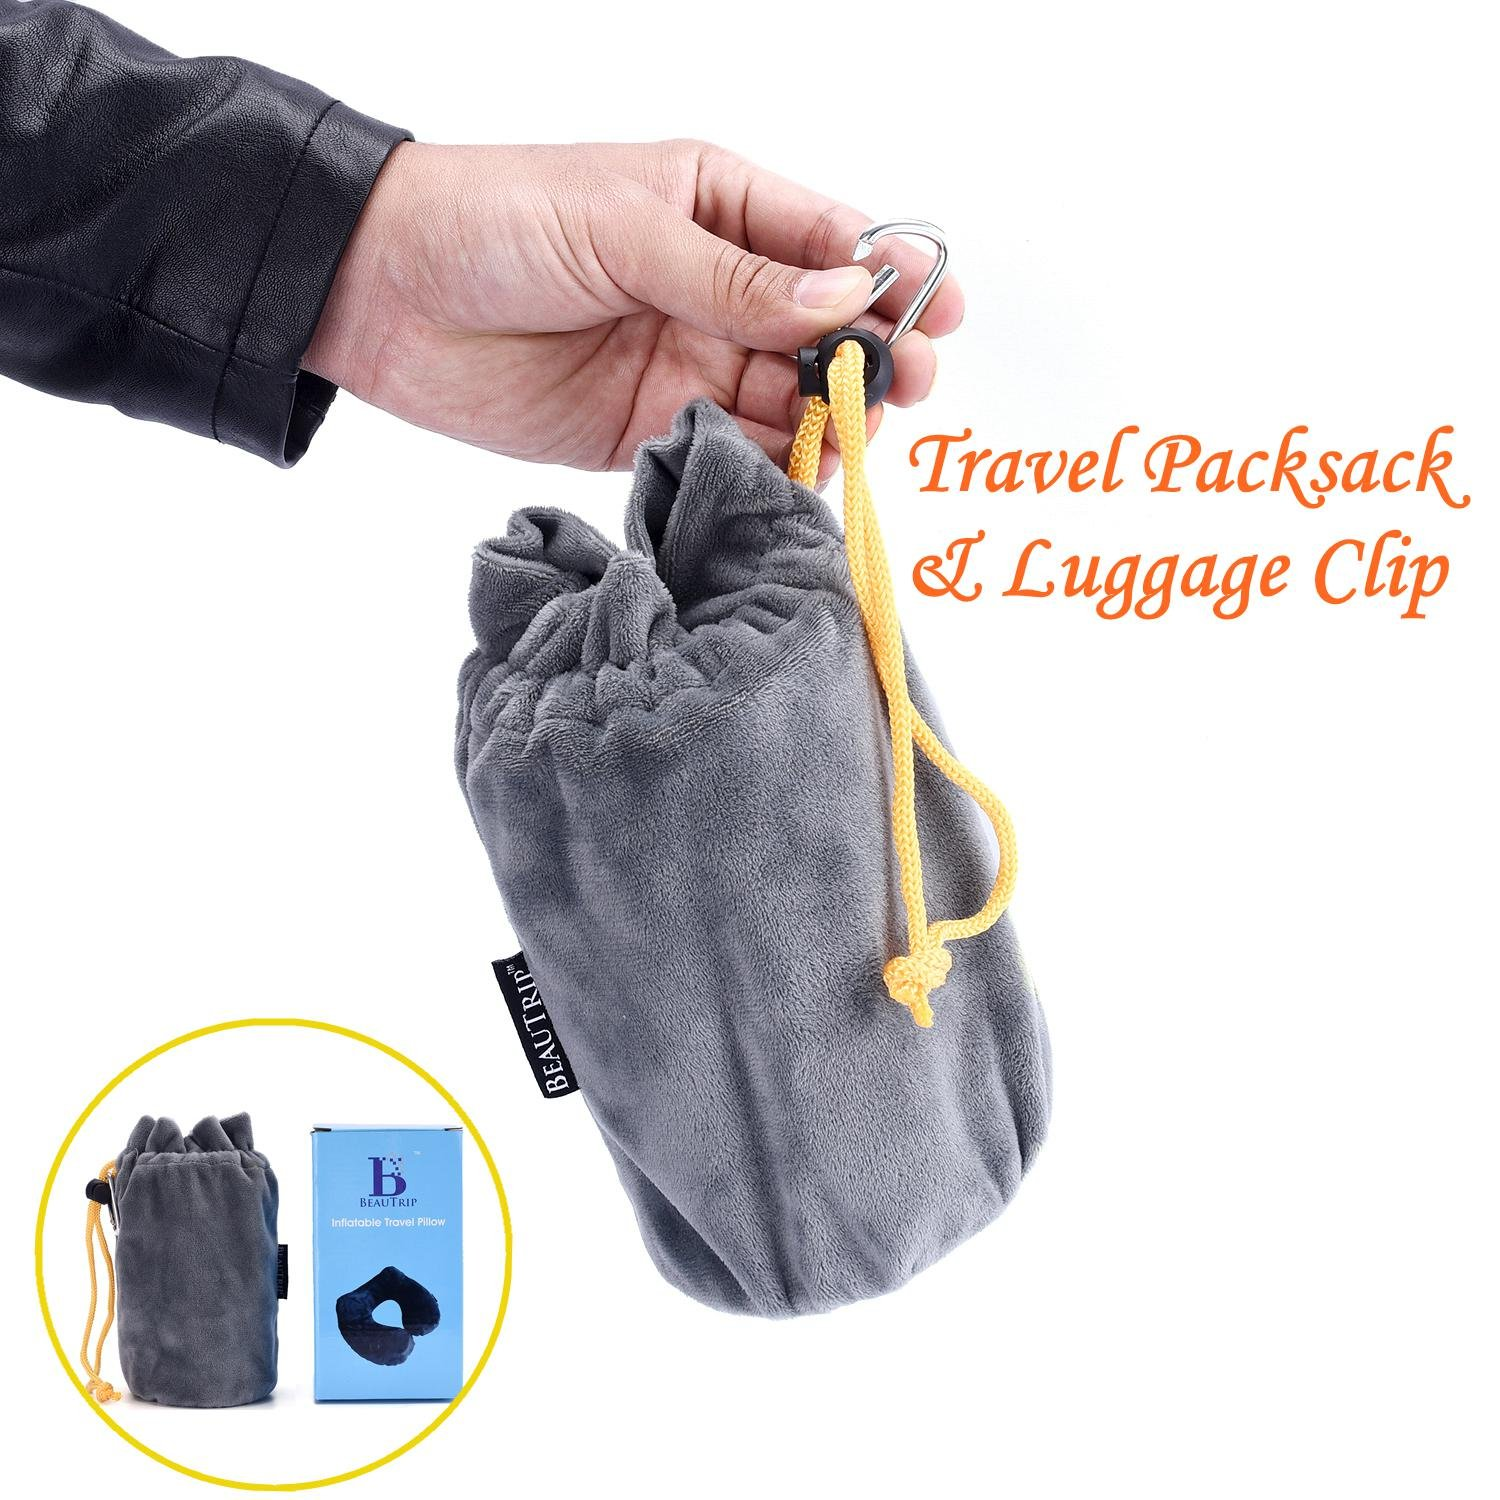 Hawkko Travel Pillow Push-Button Inflatable U Shaped Neck Pillow for Neck Support on Airplanes with Travel Packsack and Luggage Clip Black